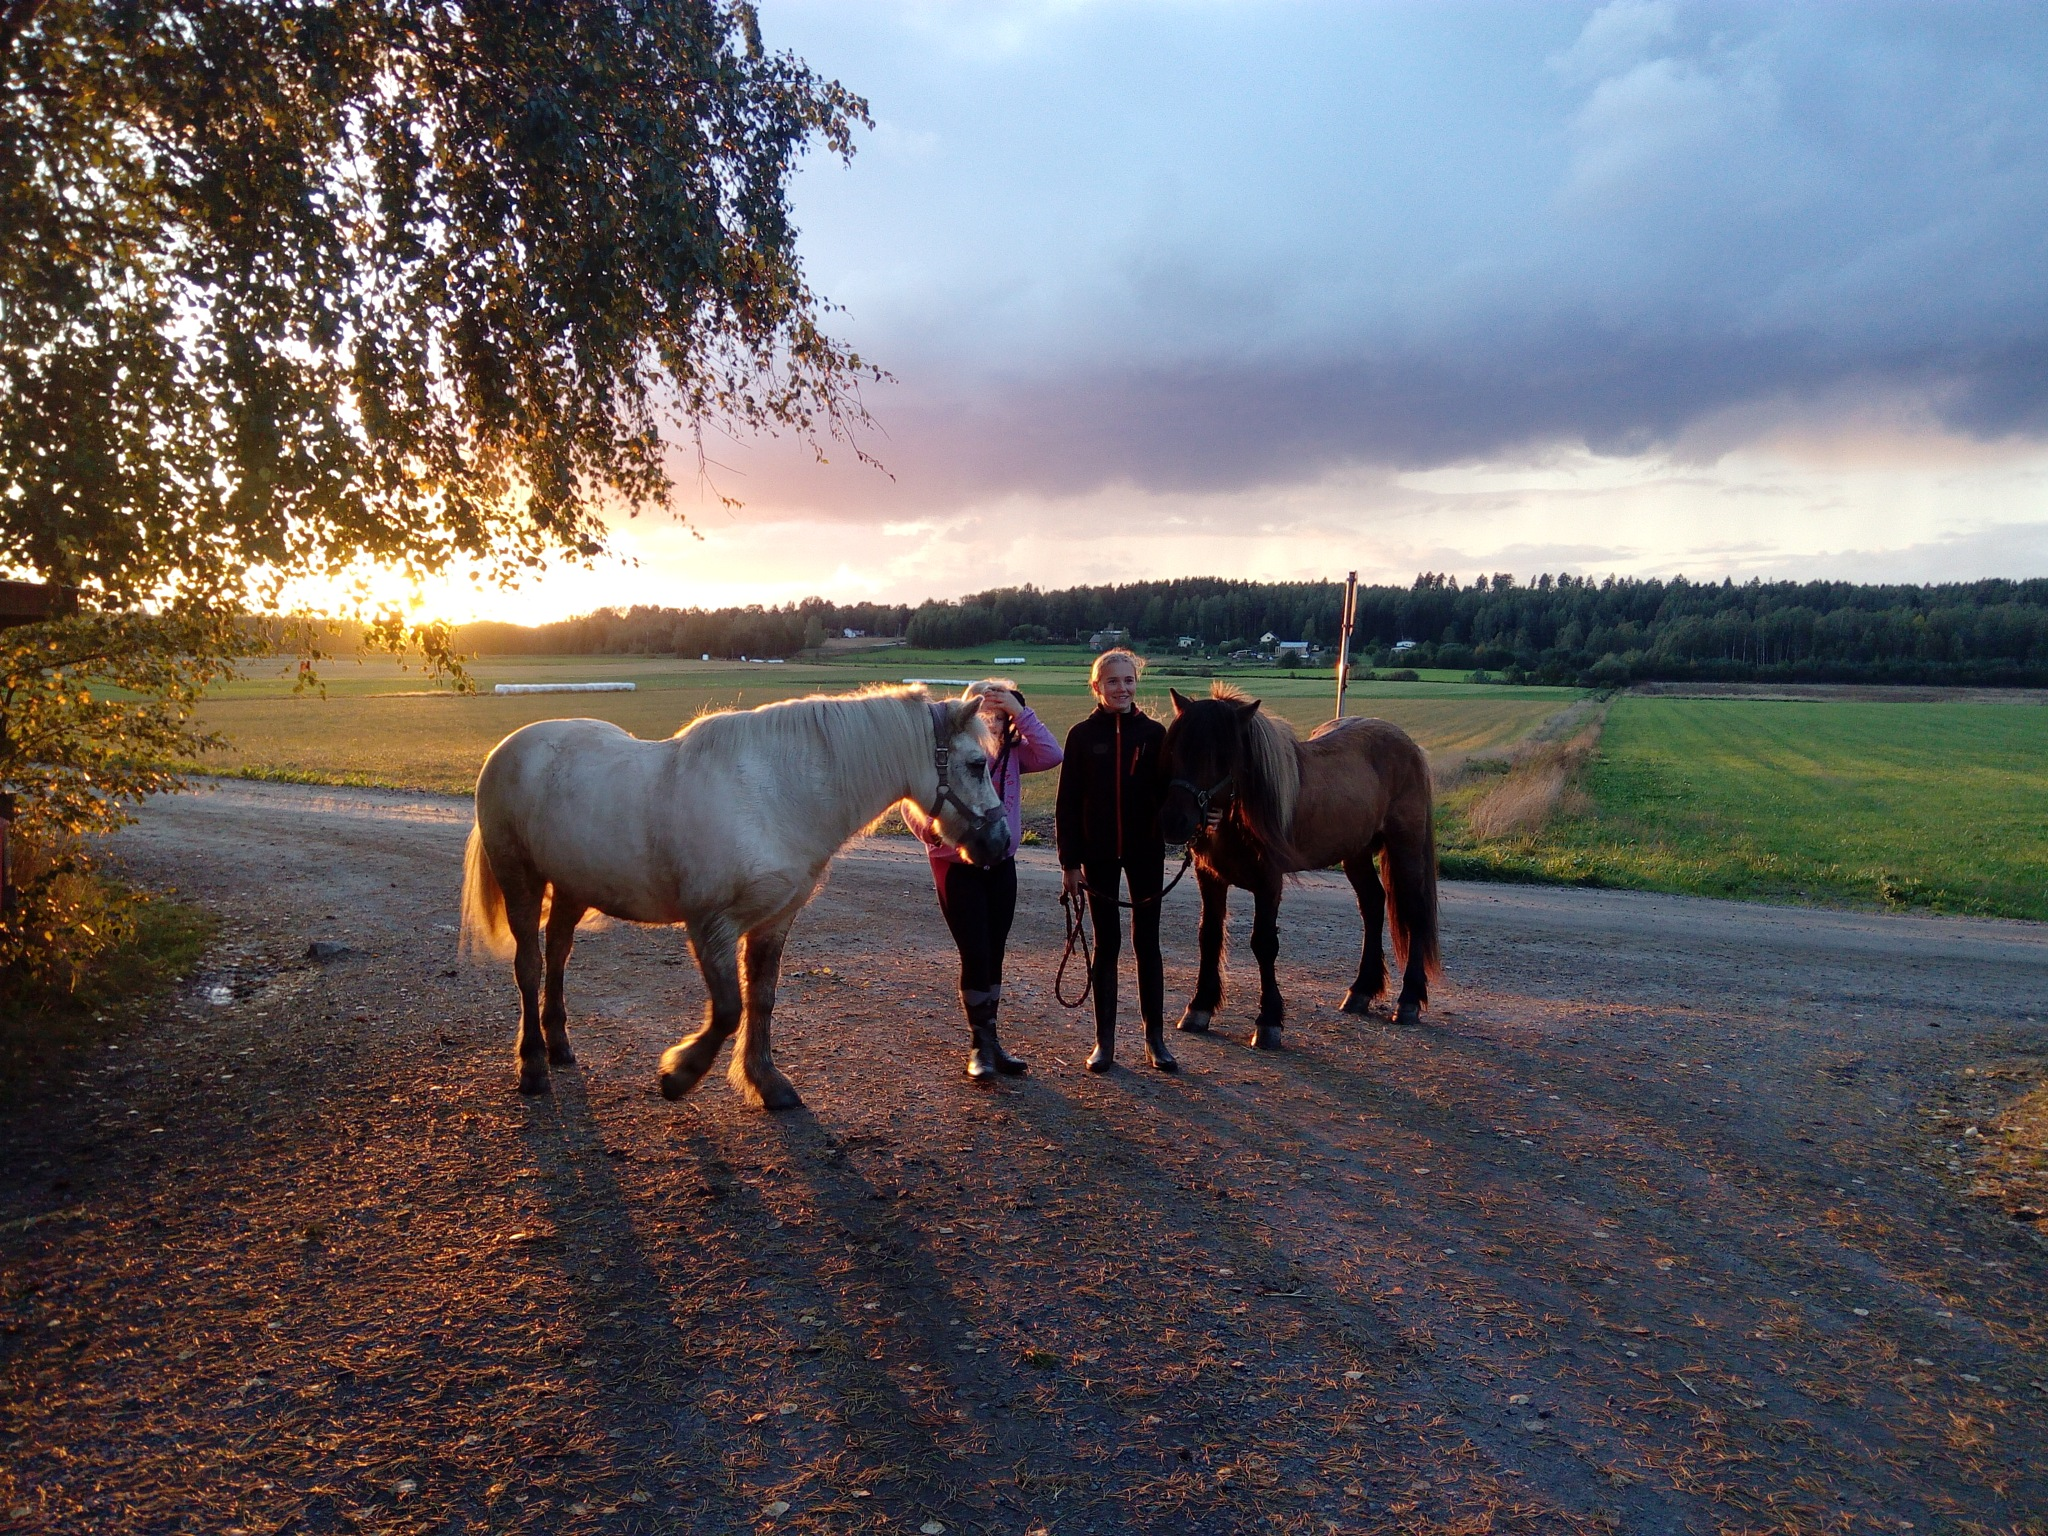 Sunset and horses by Katja Valonen